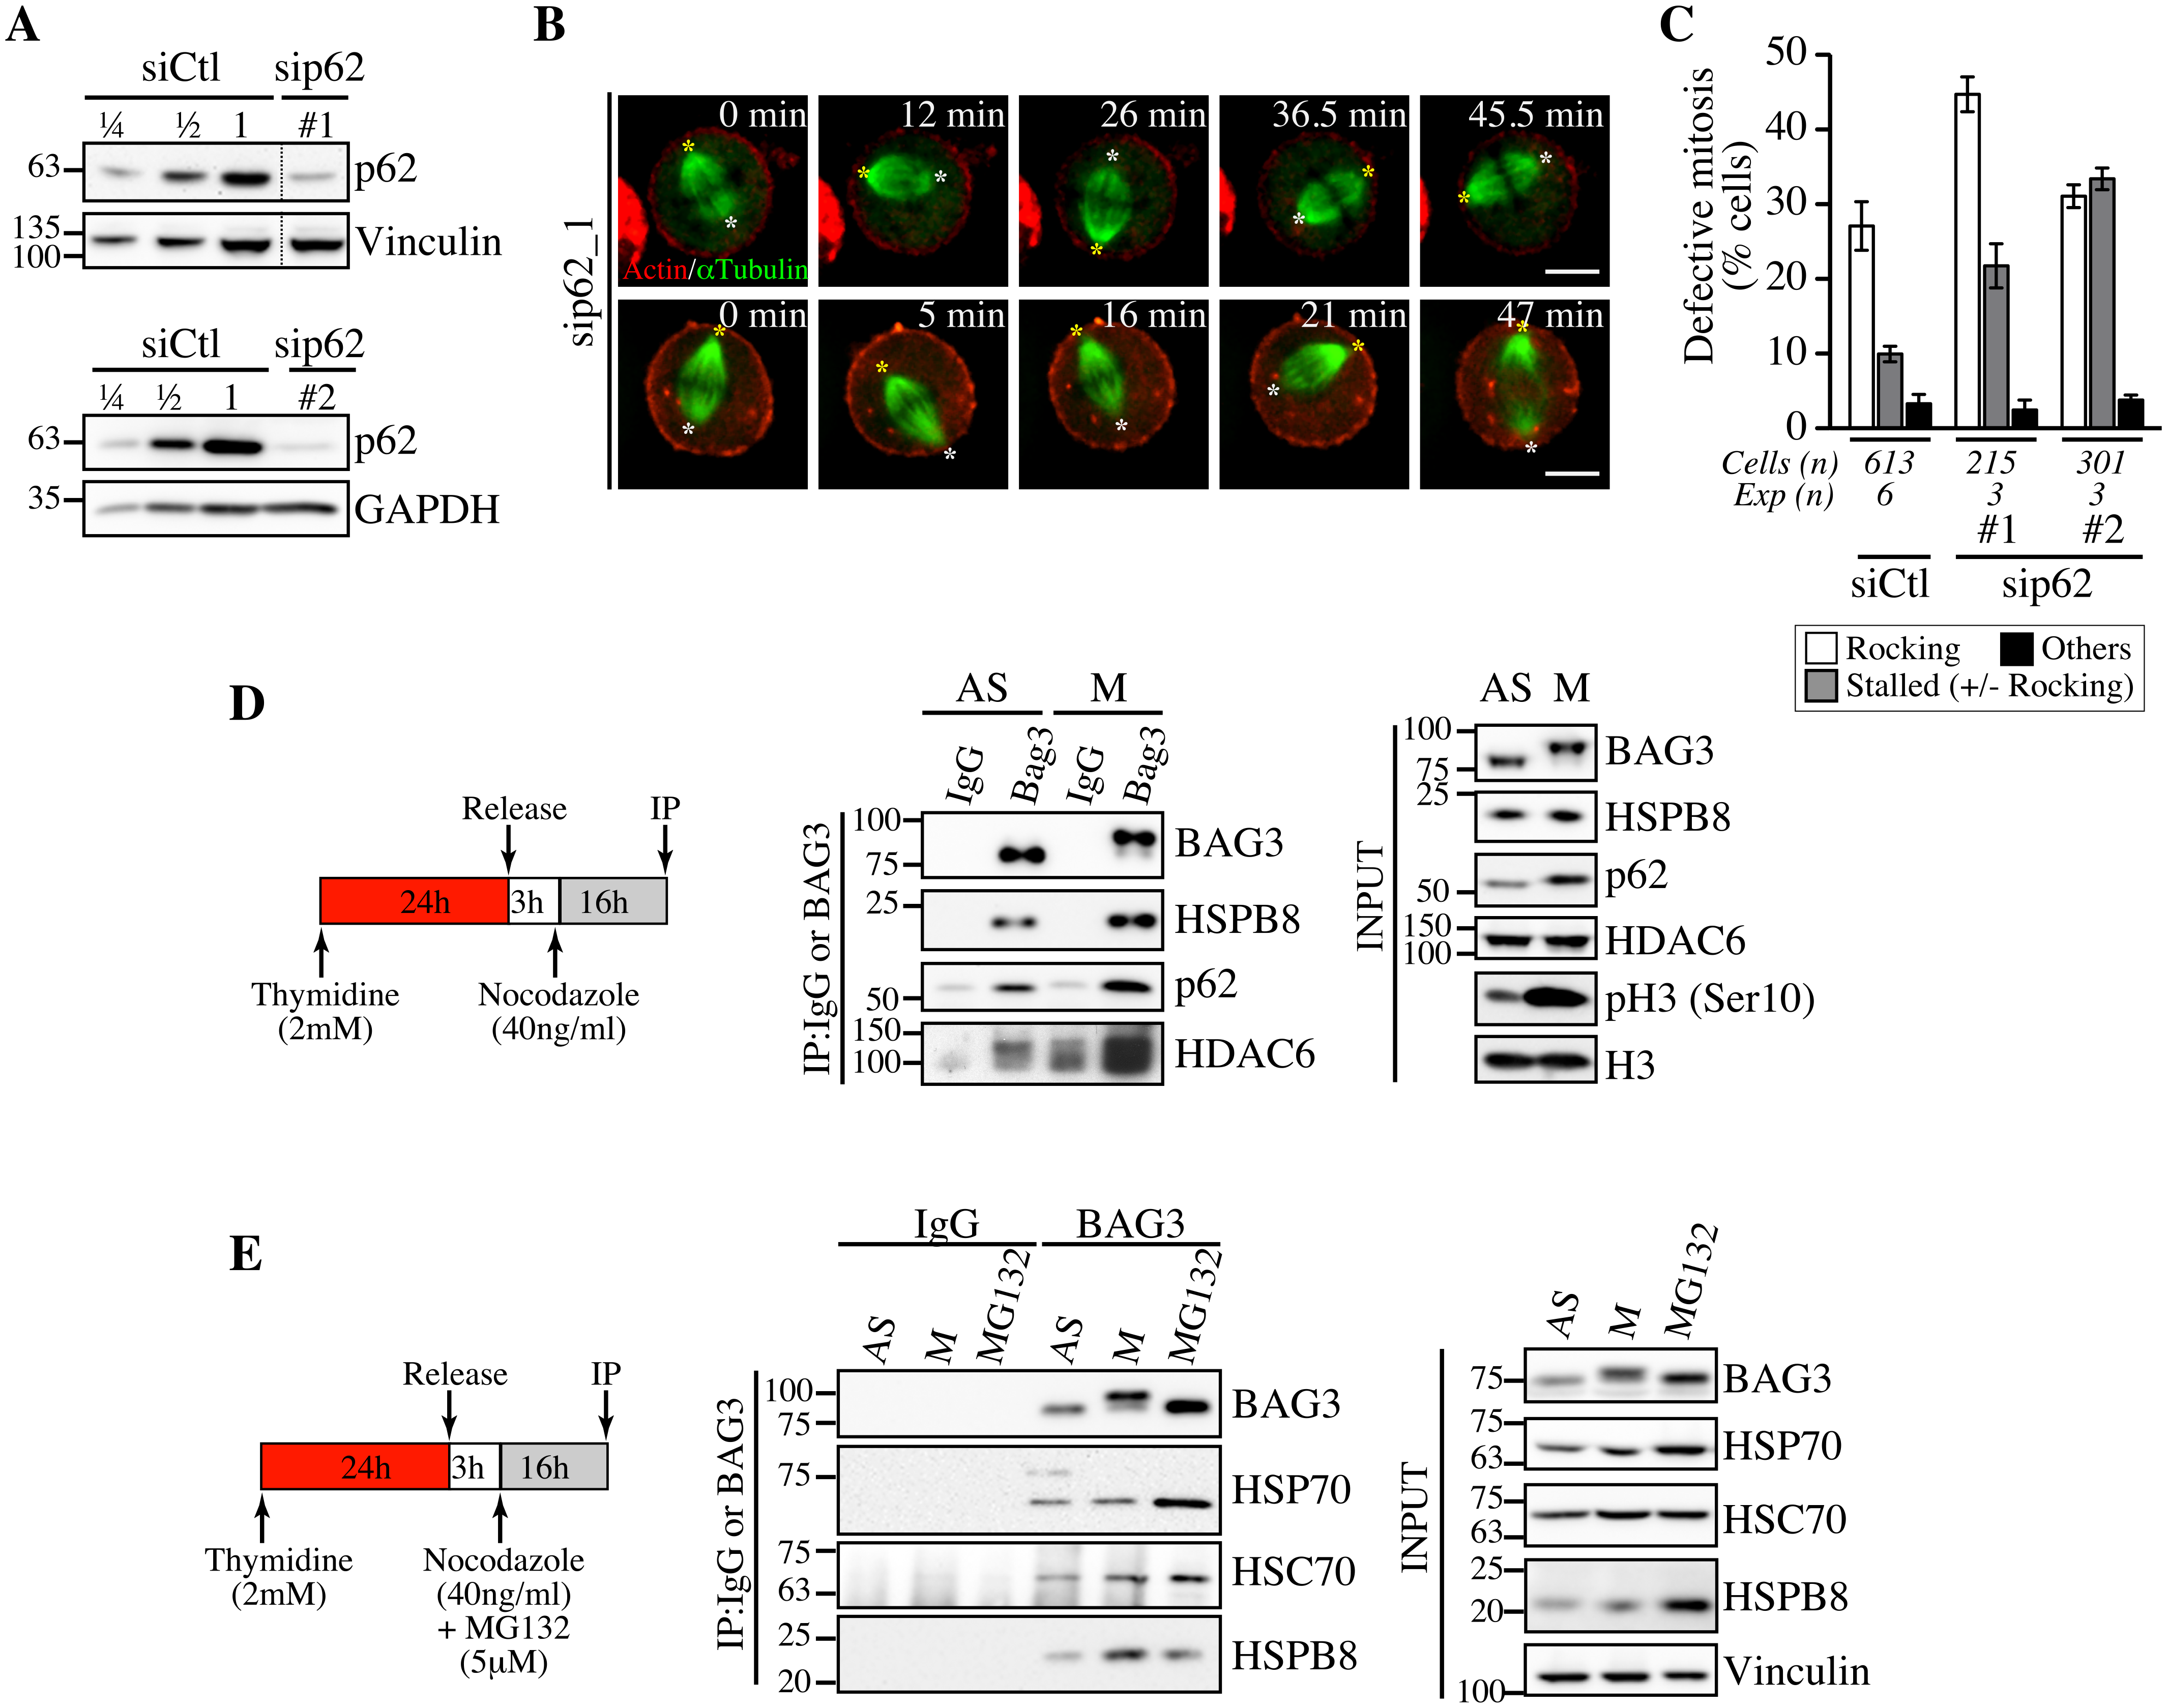 Depletion of p62, which forms a mitotic complex with BAG3-HSPB8, recapitulates the same phenotype on spindle dynamics.